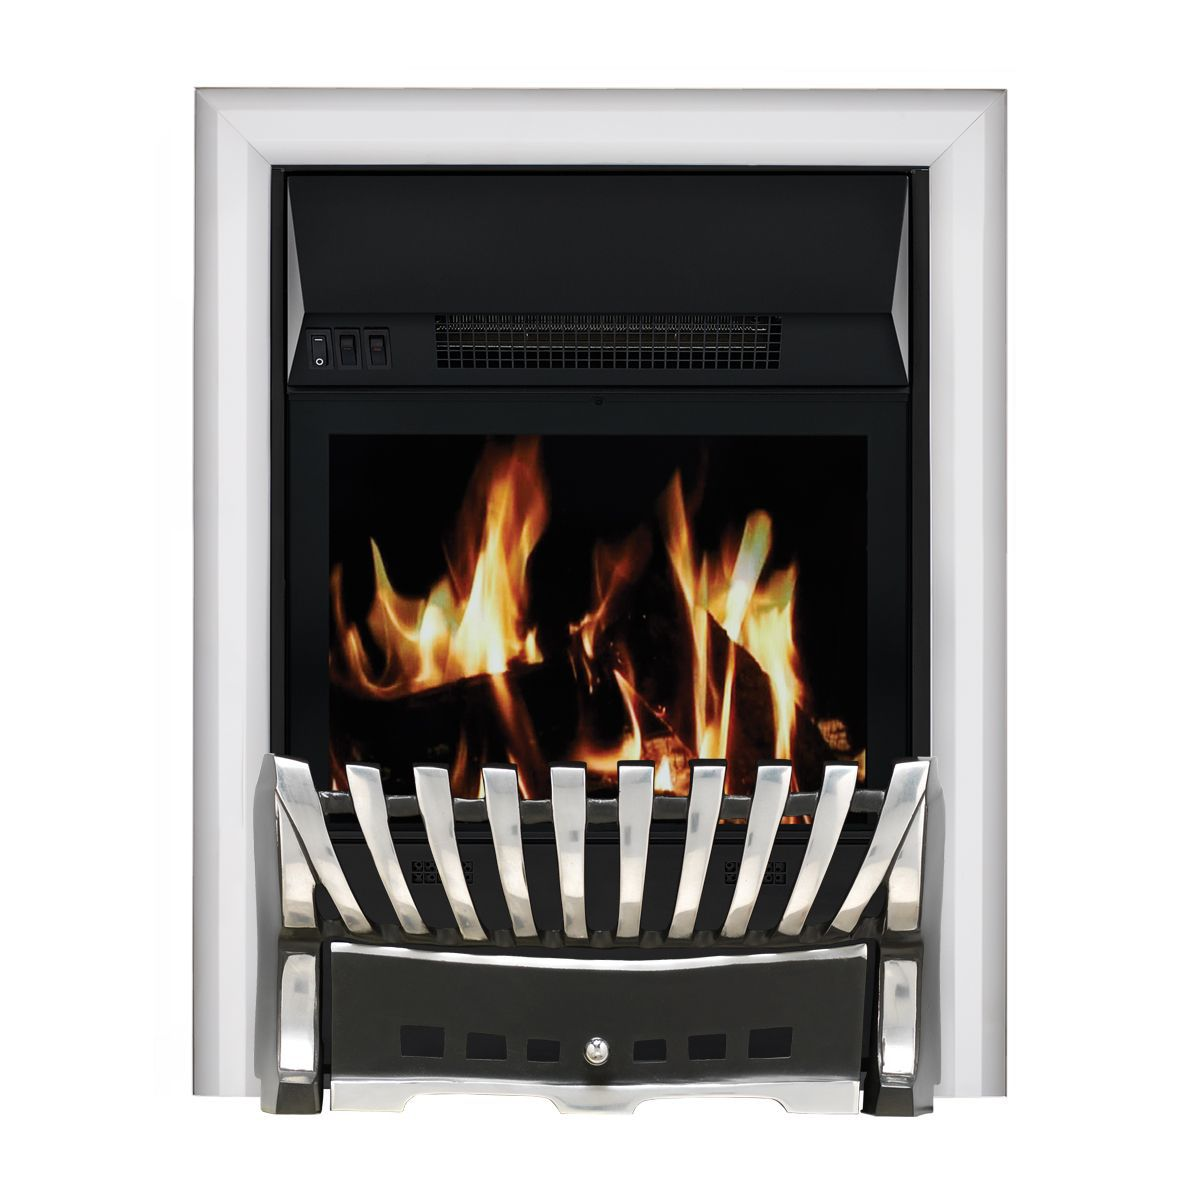 Focal Point Electric Fire: Focal Point Elegance Chrome LCD Remote Control Electric